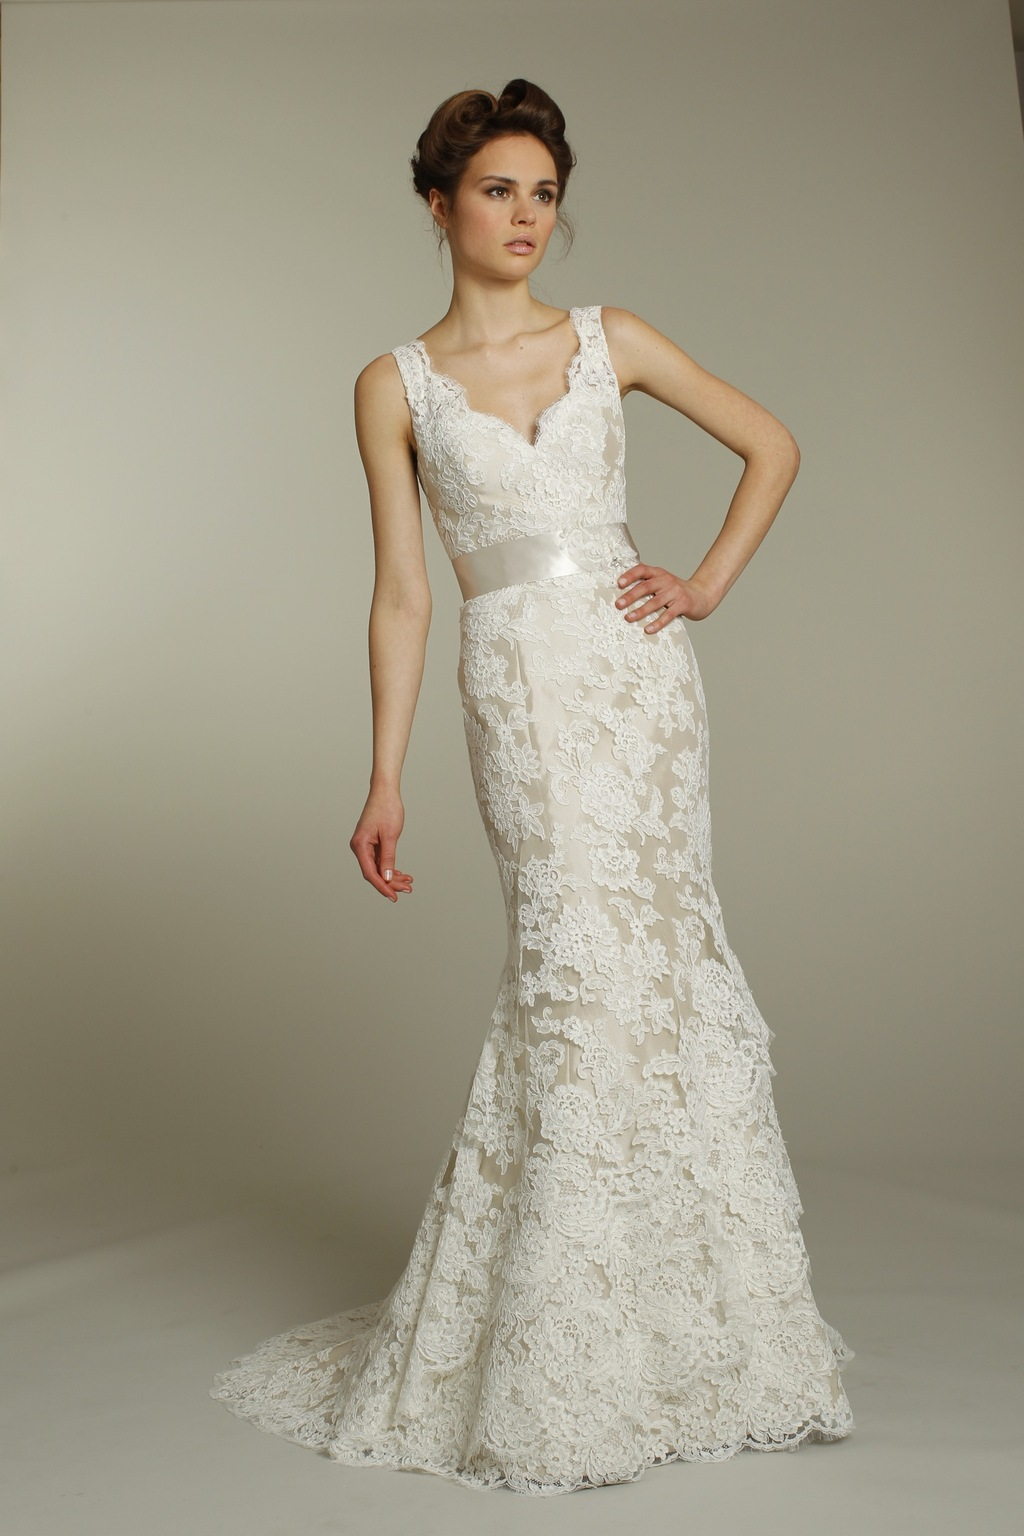 Ivory V Neck Lace Wedding Dress With Champagne Ribbon Sash